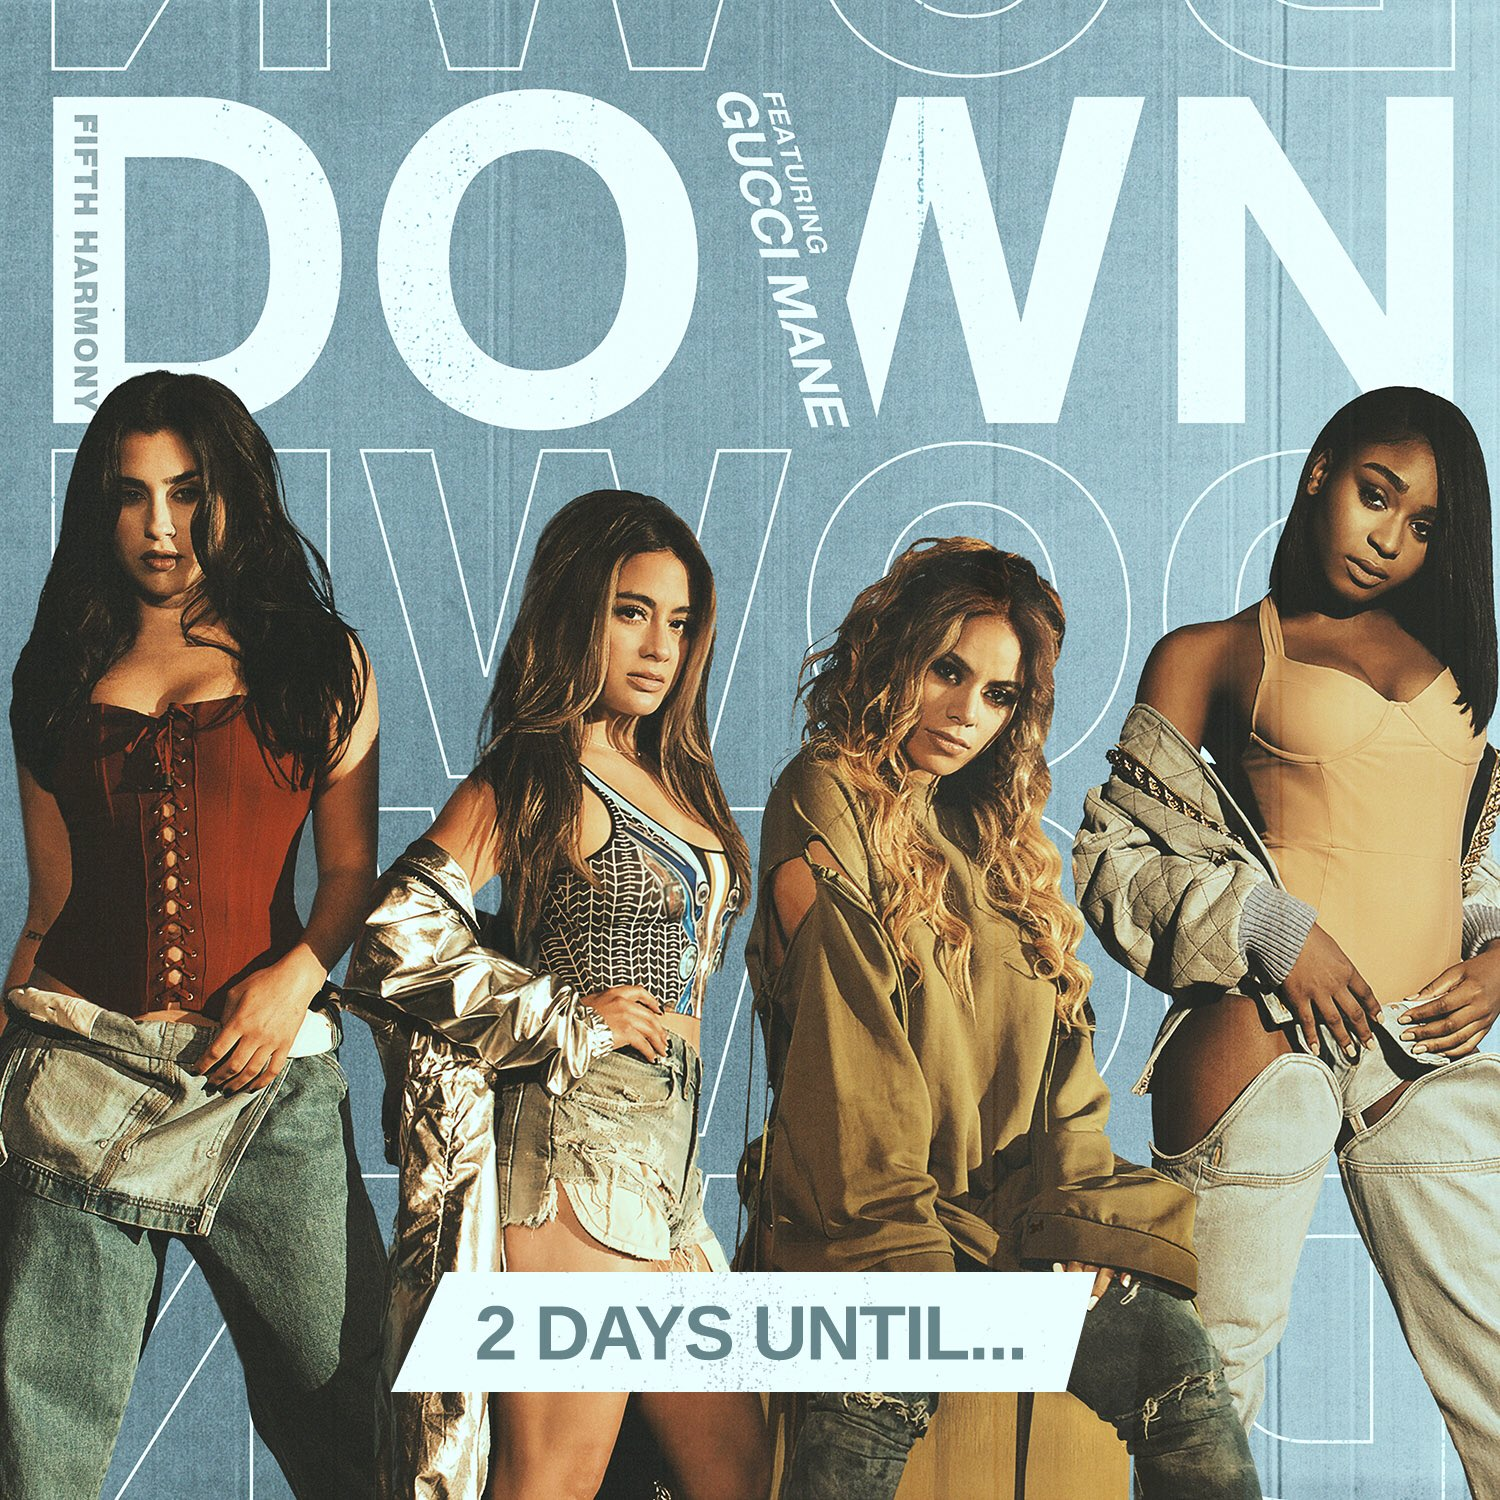 2 DAYS.. #DOWN @fifthharmony ⬇️ https://t.co/q6omYmzWai